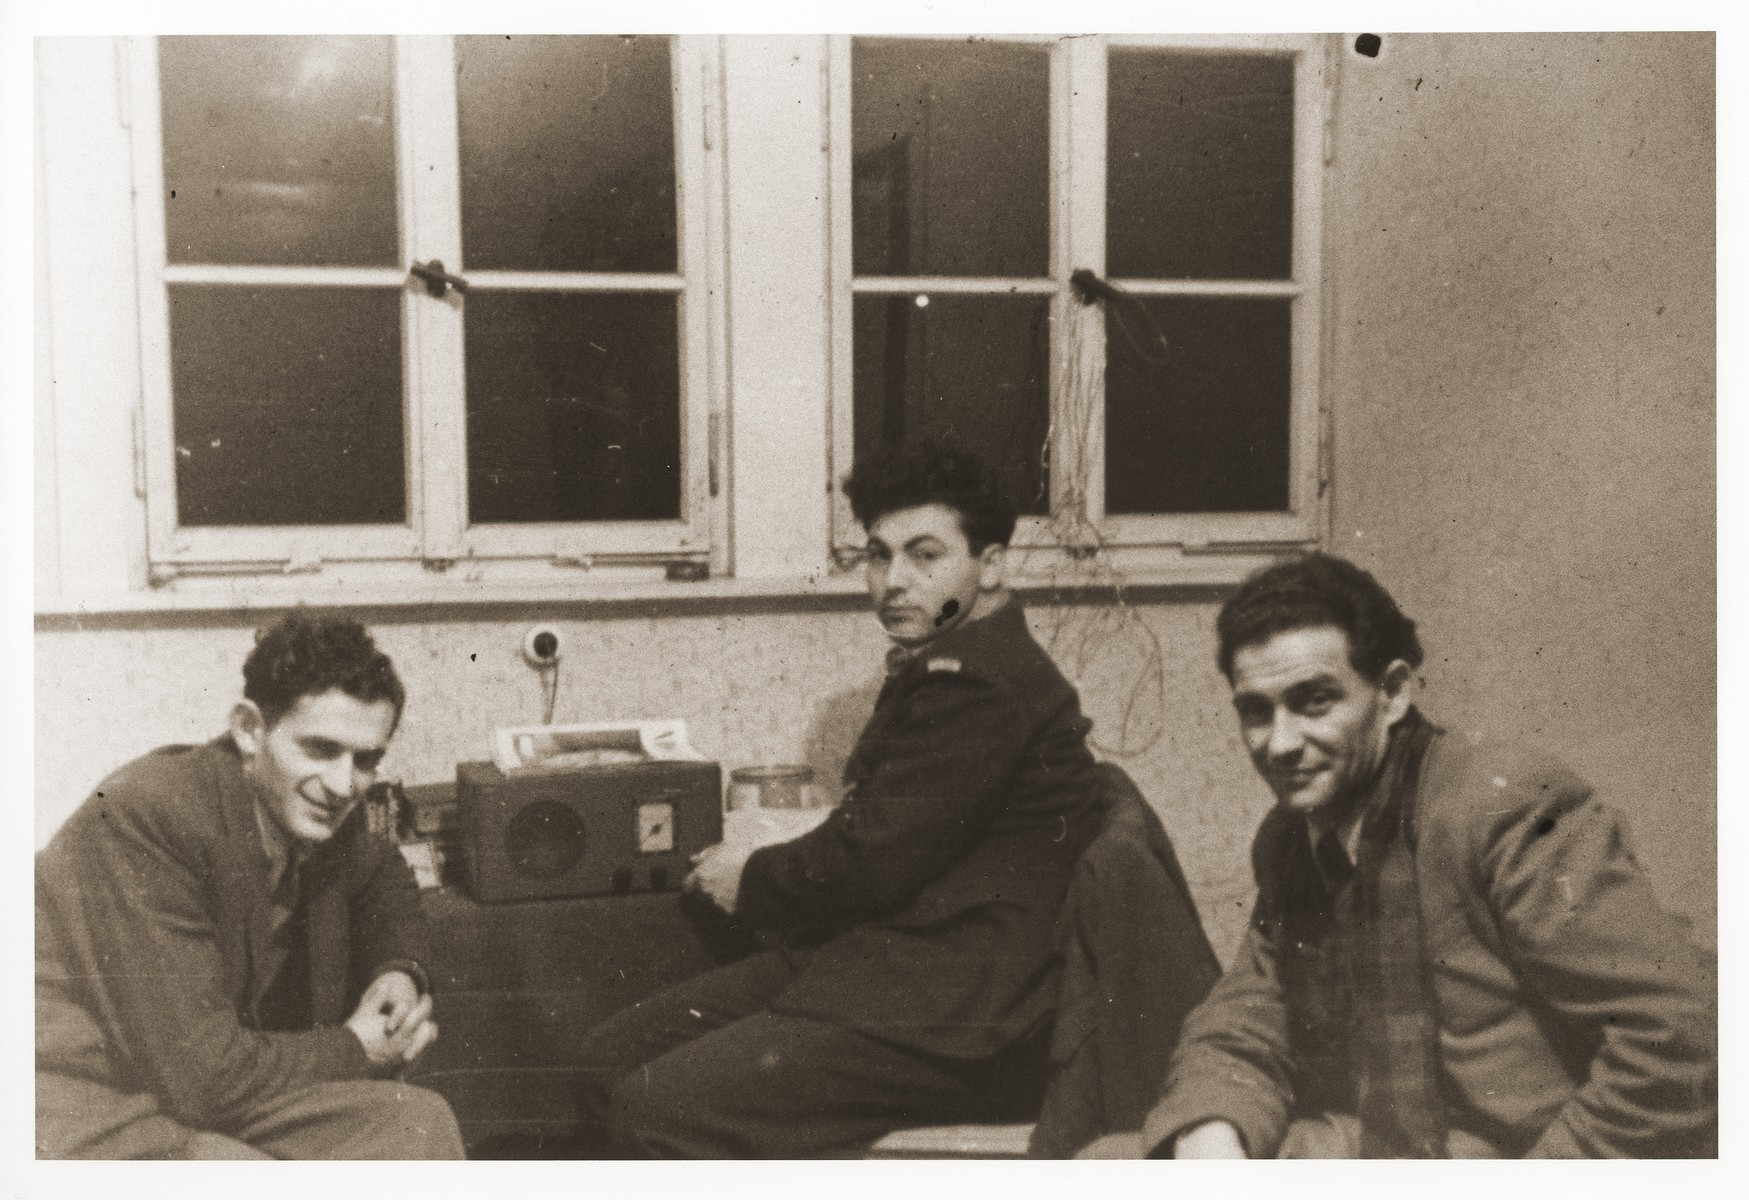 Emissaries from Palestine sent by the Haganah listen to a radio broadcast of the UN partition vote in the Bergen-Belsen displaced persons camp.  Szaja Aron Knobler (now Alex Knobler) is the son of Moszek and Jocheta Knobler.  He was born in 1921 in Bedzin, Poland.  Szaja had three older sisters, Ita, Esther and Leah.  In 1931 the family moved to Chorzow near the German border.  There Szaja became active in the Akiba Zionist youth movement.  In 1938 he joined the Akiba hachshara [agricultural training farm] in Bielsko and made plans to immigrate to Palestine.  His plans were thwarted, however, by the start of World War II.  In the first months of the war Szaja fled to the Soviet sector of Poland, where he explored possible exit routes to Palestine via Romania for the nascent Zionist underground.  During a visit home in 1940 Szaja was caught up in the forced resettlement of his family to the Sosnowiec ghetto.  From Sosnowiec Szaja was deported to the Blechhammer labor camp, where he remained until the camp was evacuated in January 1945.  During the forced march out of the camp Szaja ran away with two friends.  German guards shot and killed his friends but Szaja escaped.  Posing as a Polish laborer, Szaja found refuge with a German farmer in Gleiwitz until liberation.  After the war Szaja, who was the sole survivor of his immediate family, took a leading role in the setting up of Zionist collectives in Poland.  He also was active in the Bricha and Aliyah Bet [illegal immigration to Palestine] movement.  This activity led to his arrest in Sosnowiec by the NKVD.  Following his release from prison, Szaja left Poland for Germany.  During the summer of 1945 Szaja organized Zionist activities at the Foehrenwald displaced persons camp.  In October he moved on to the Bergen-Belsen DP camp, where he joined a group of 400 would-be immigrants to Palestine.  The group sailed aboard the Tel Hai from Marseilles in March 1946.  When the ship reached Palestine, it was intercepted by the British and its passengers interned for three weeks in Athlit.  Following his release Szaja settled in Kibbutz Masada, but by December 1946 he was back in Germany.  Serving as an emissary for NOHAM (Noar Halutzi Meuchad), a Zionist youth umbrella group, Szaja distributed immigration certificates and organized Youth Aliyah groups in the DP camps.  While working at the Belsen DP camp Szaja met Pola Blicblum, a survivor from Lodz.  They were married in the Landsberg DP camp on July 30, 1947.  Soon after they settled in Palestine.